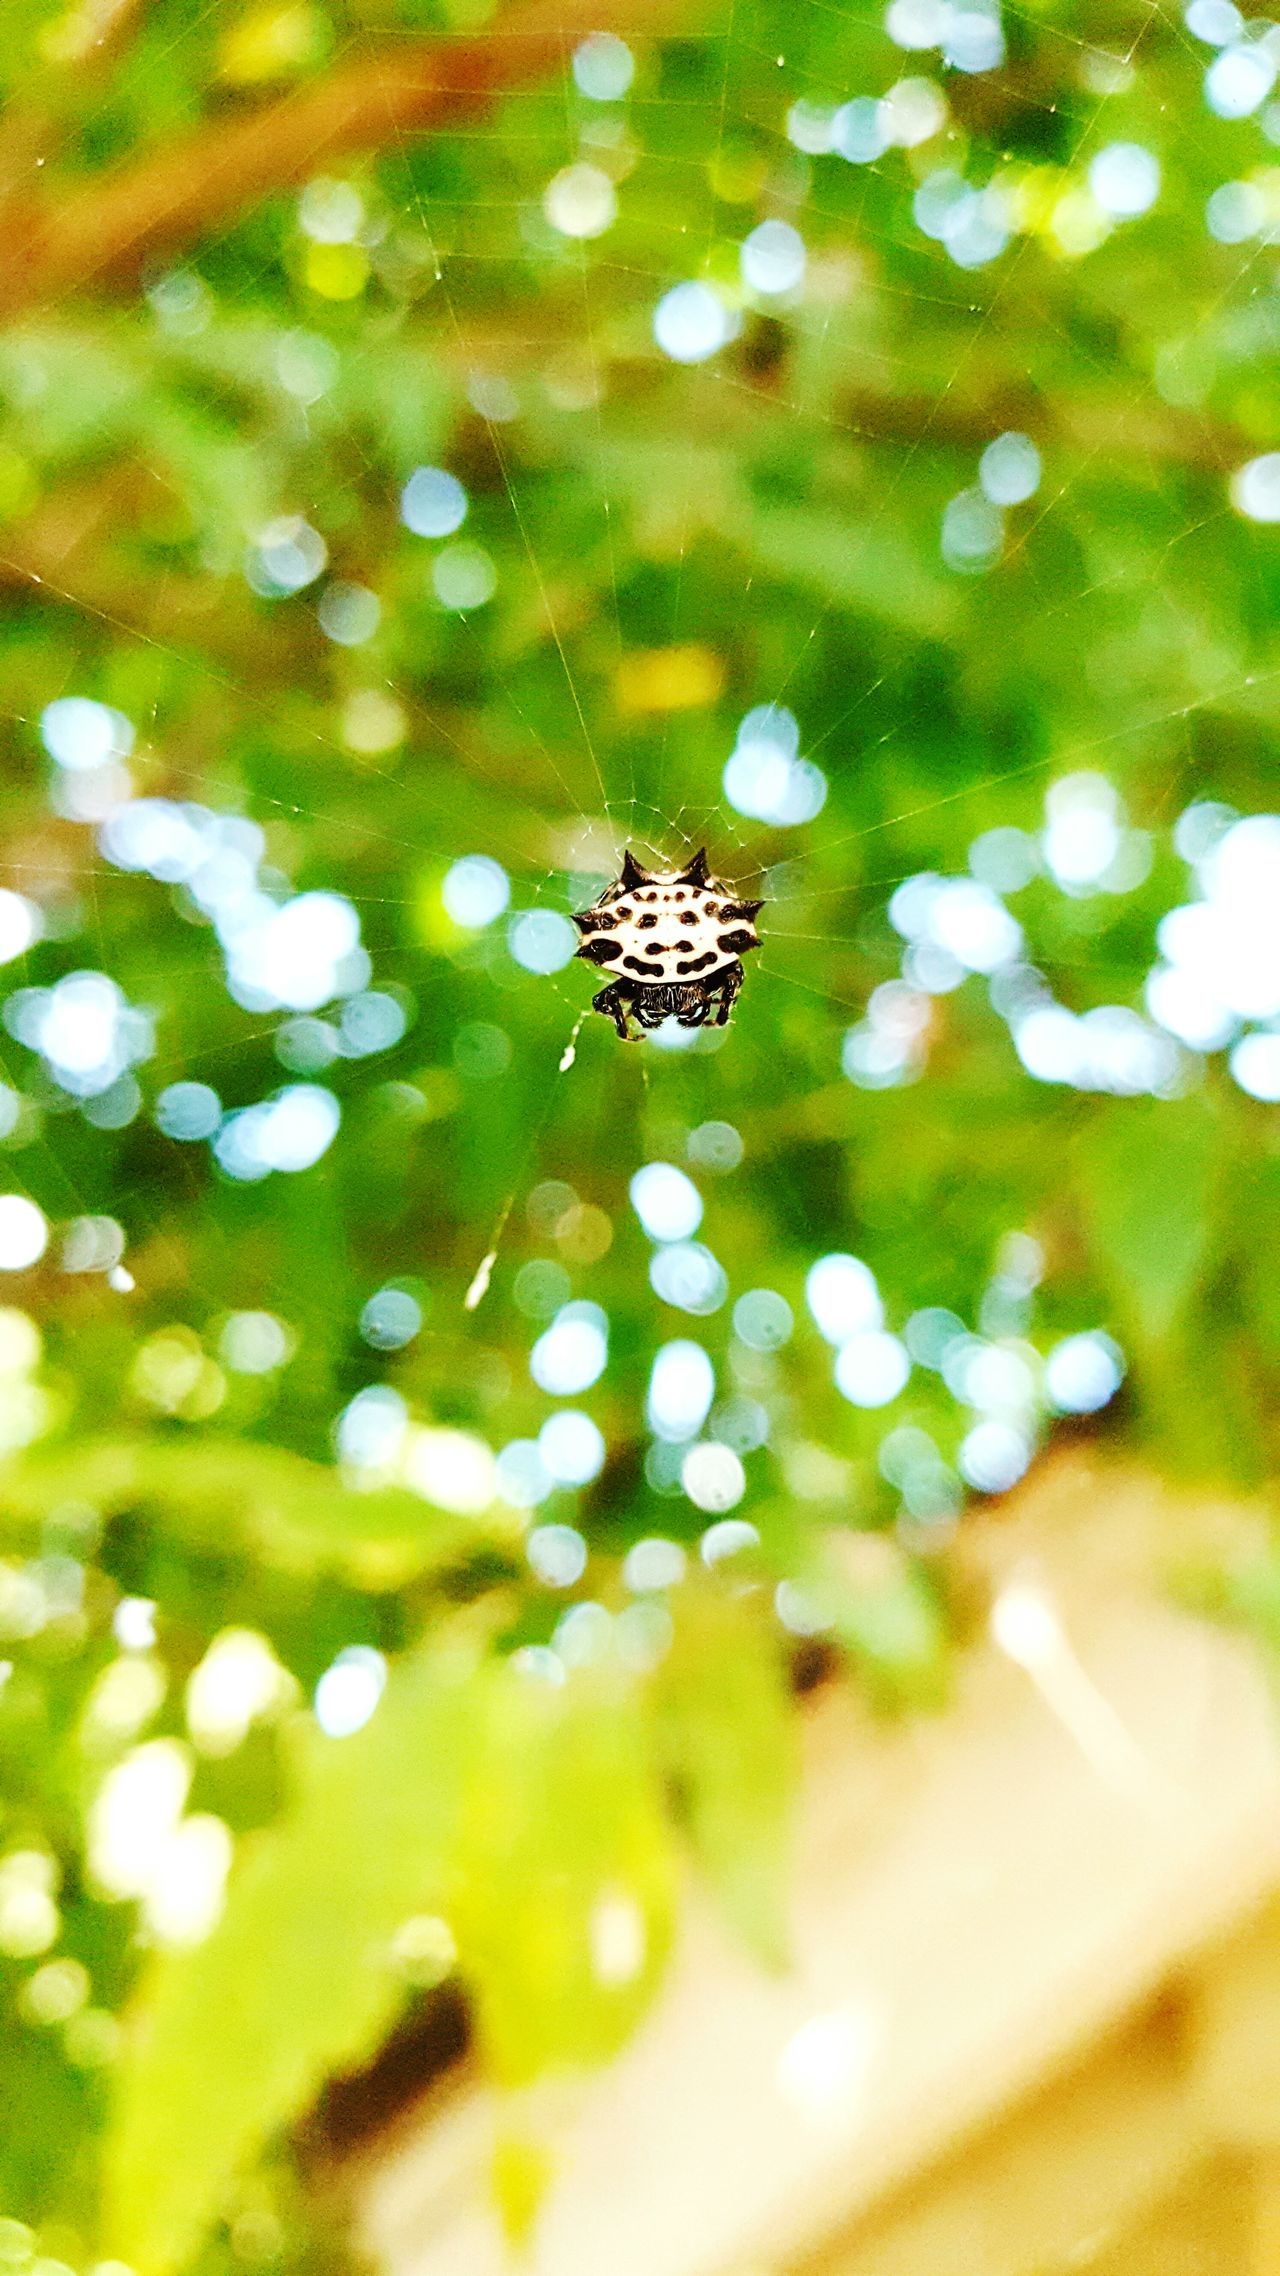 Spider Web Nature Beauty In Nature Insect Leaf Green Color